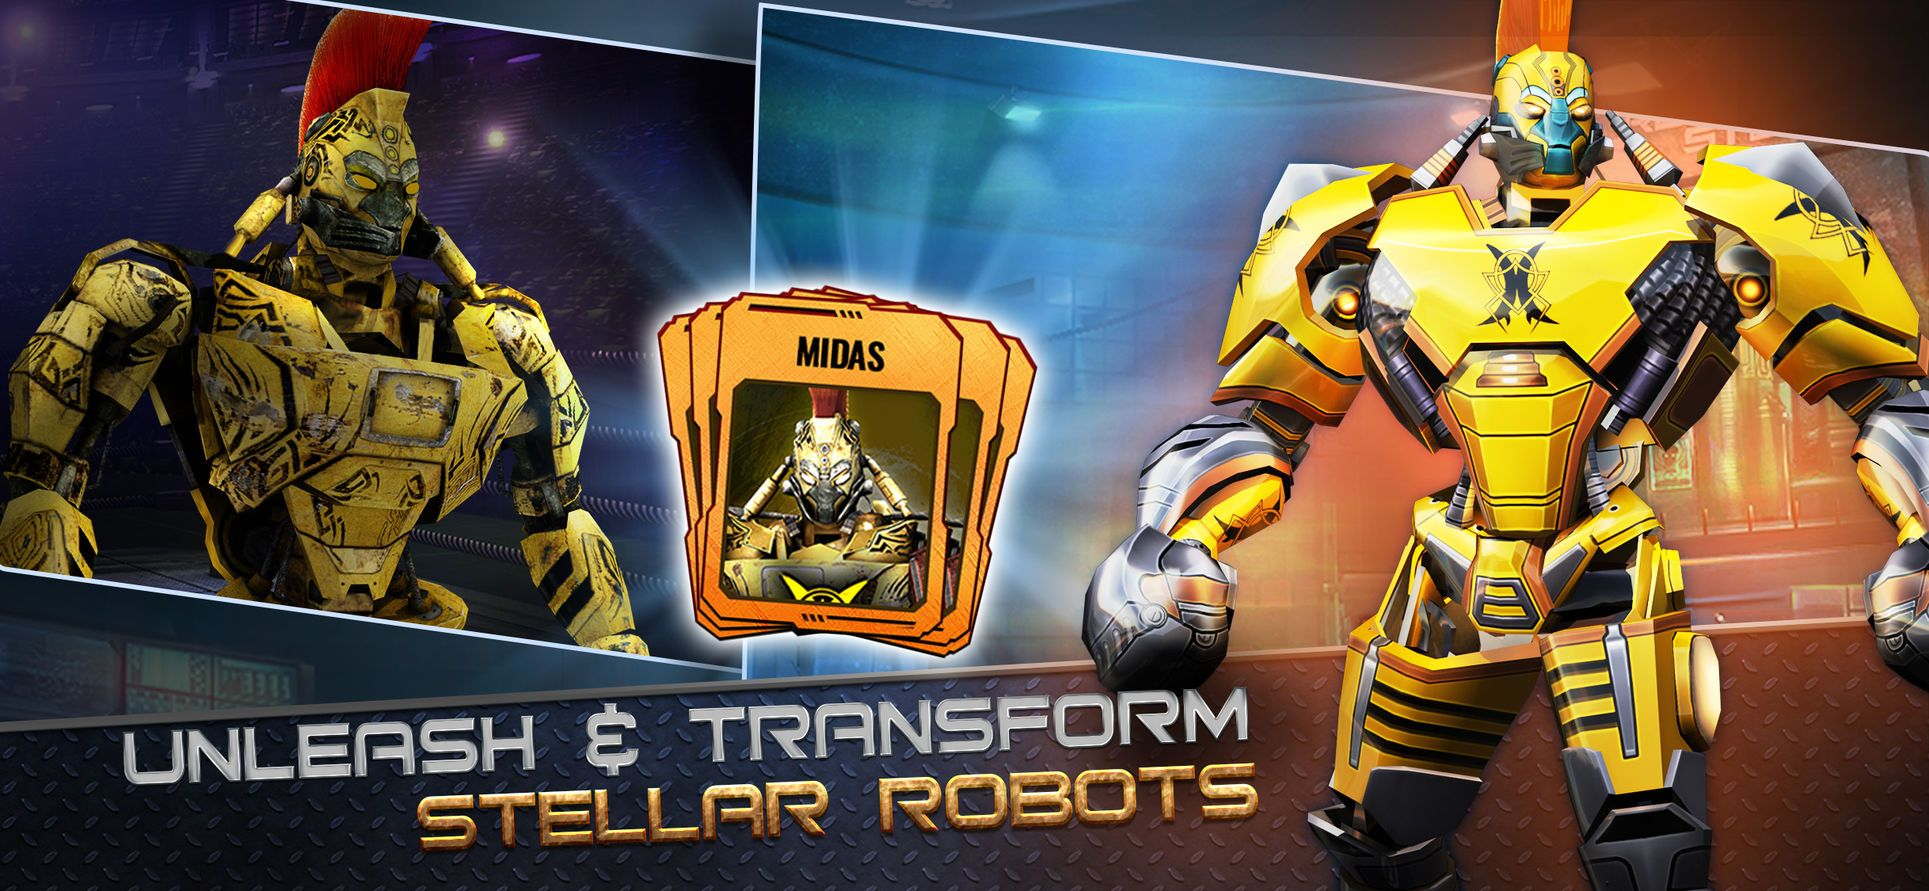 Real Steel World Robot Boxing Uk Entertainment Big Sports Real